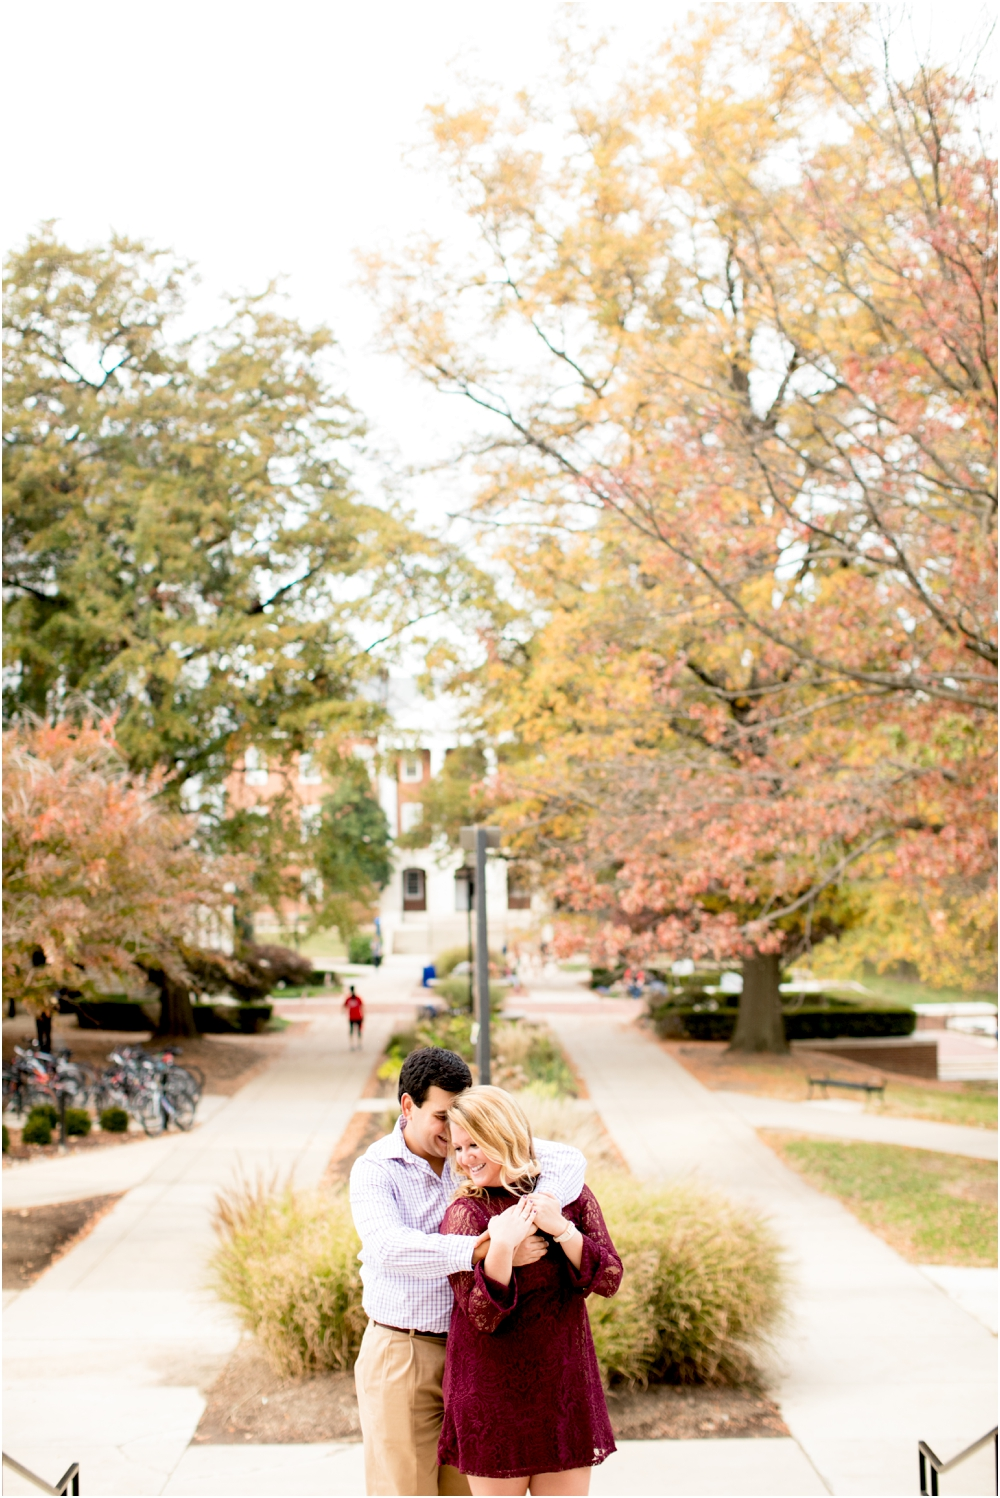 torie chris university of maryland engagement session living radiant photography_0006.jpg